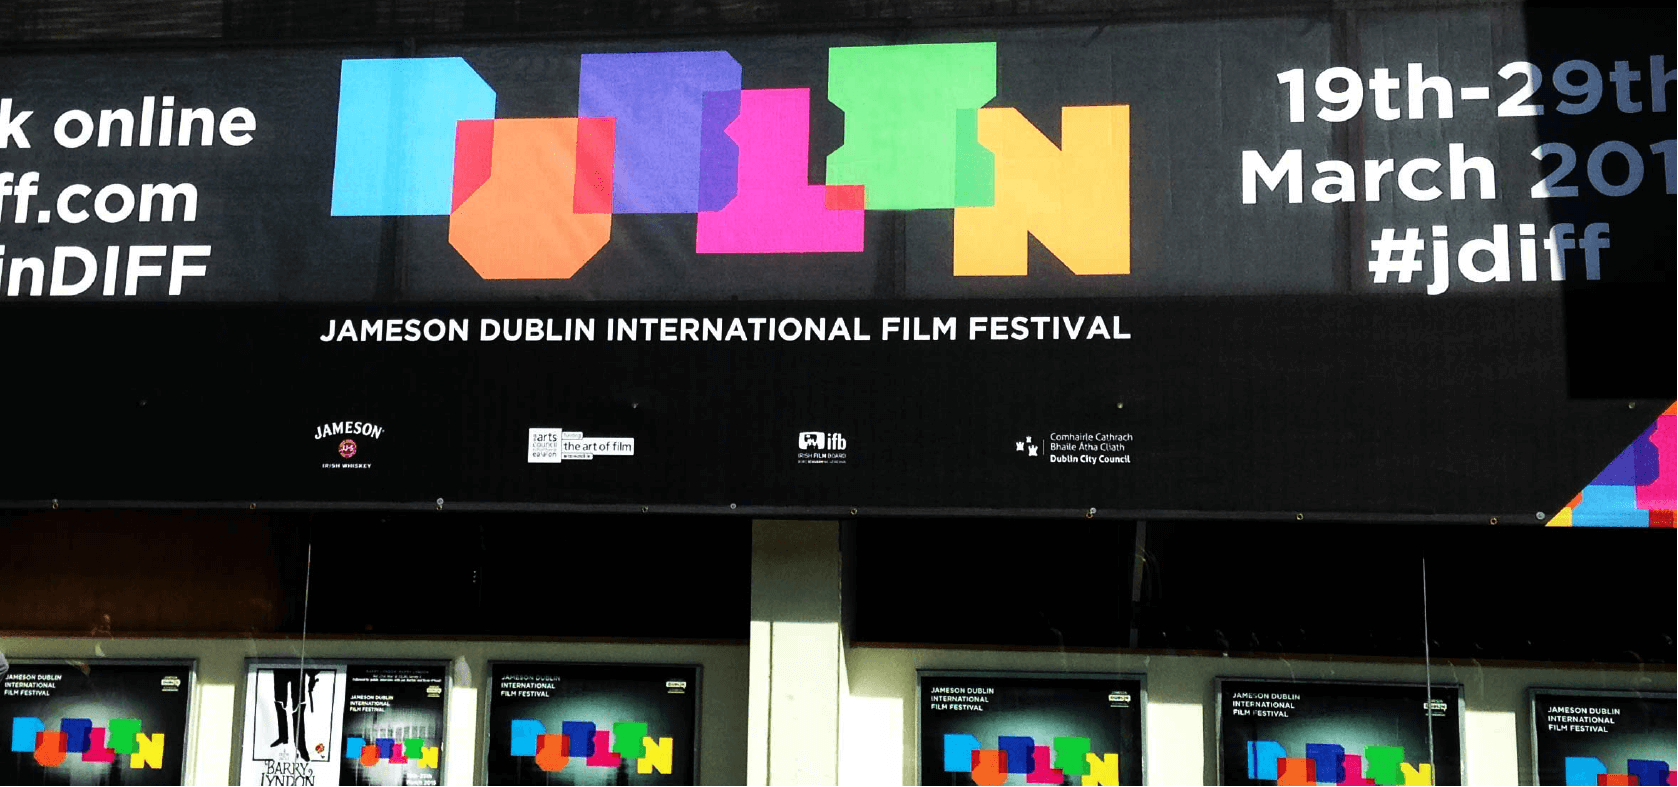 Branding and Identity created for the DUblin Film Festival